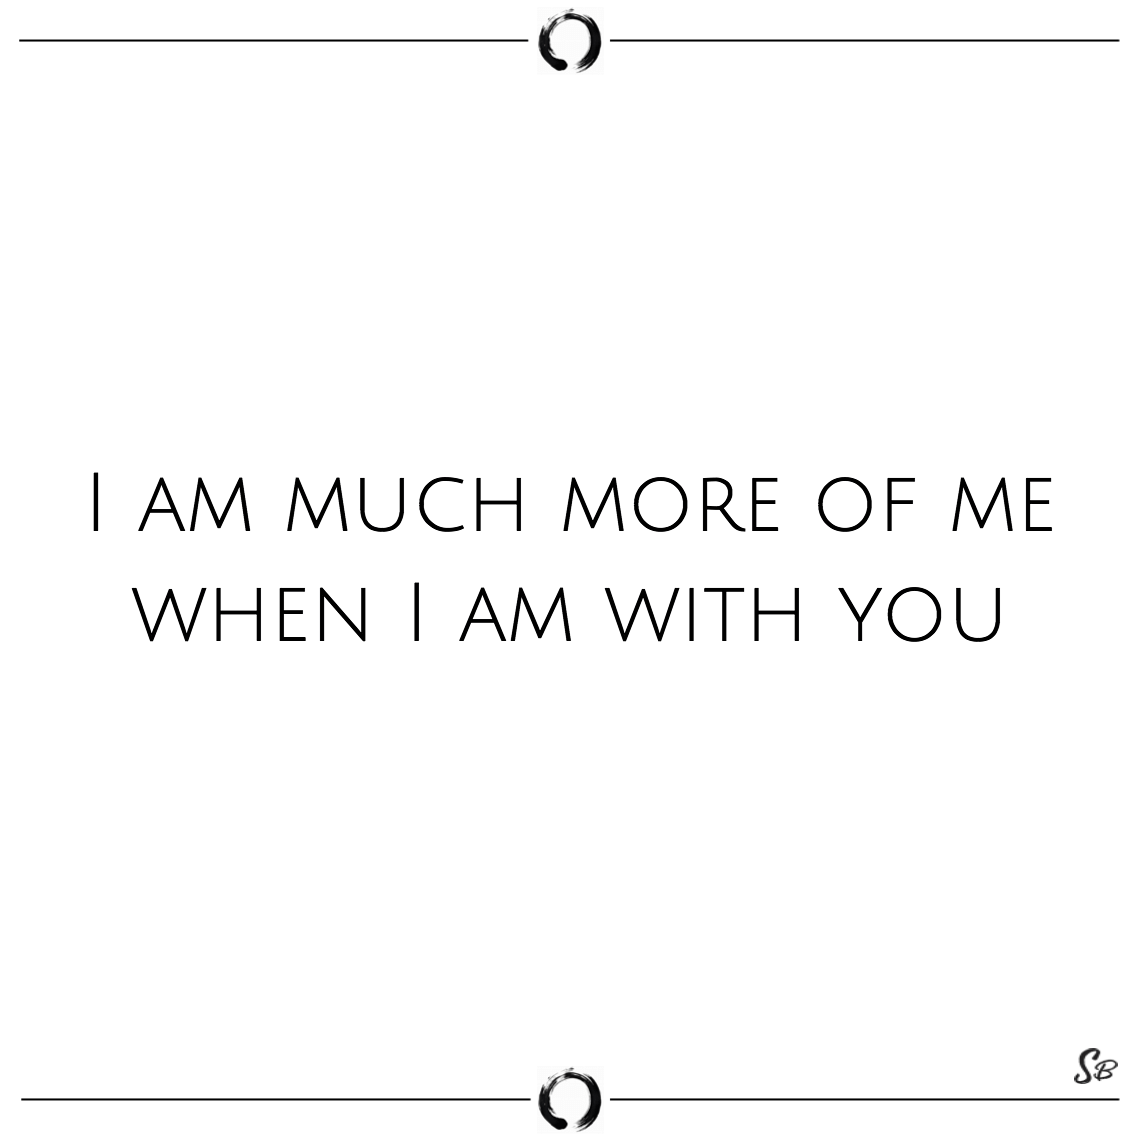 I am much more of me when i am with you